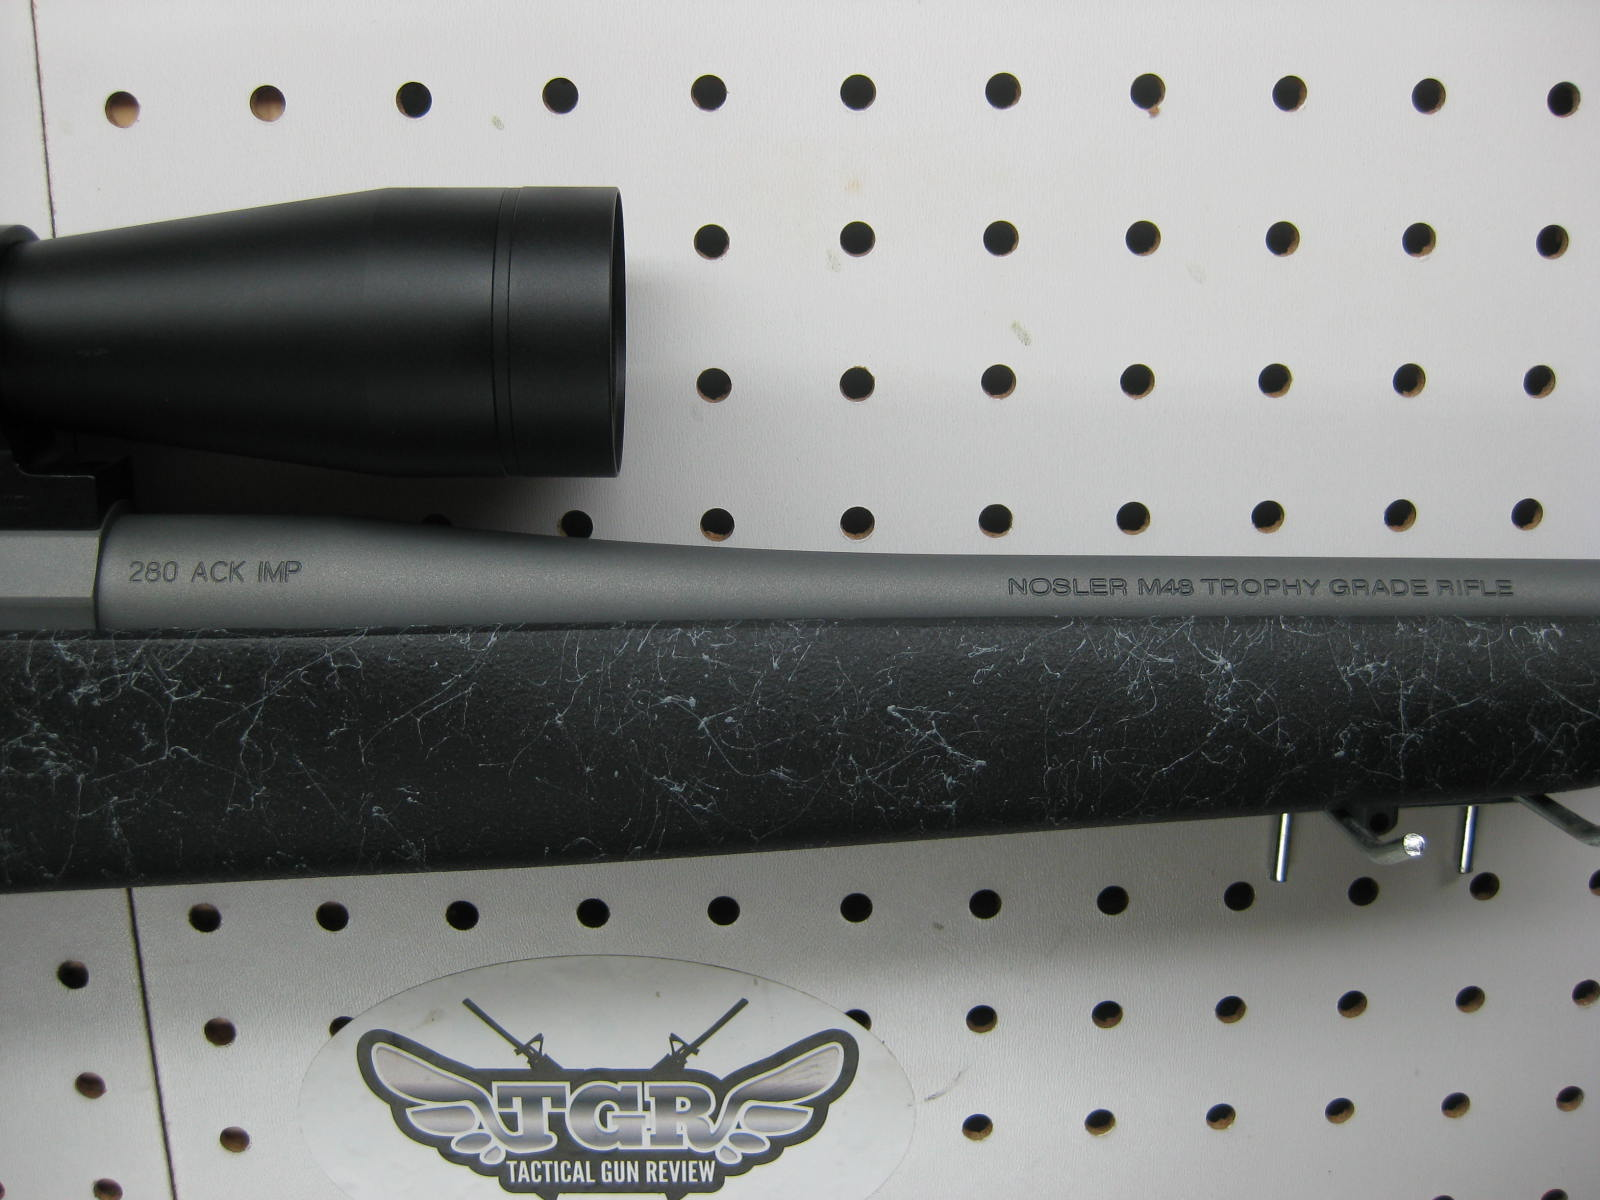 Nosler 280 Ackley Improved http://tacticalgunreview.com/blog/2011/08/nosler-trophy-grade-280-ackley-improved-review/